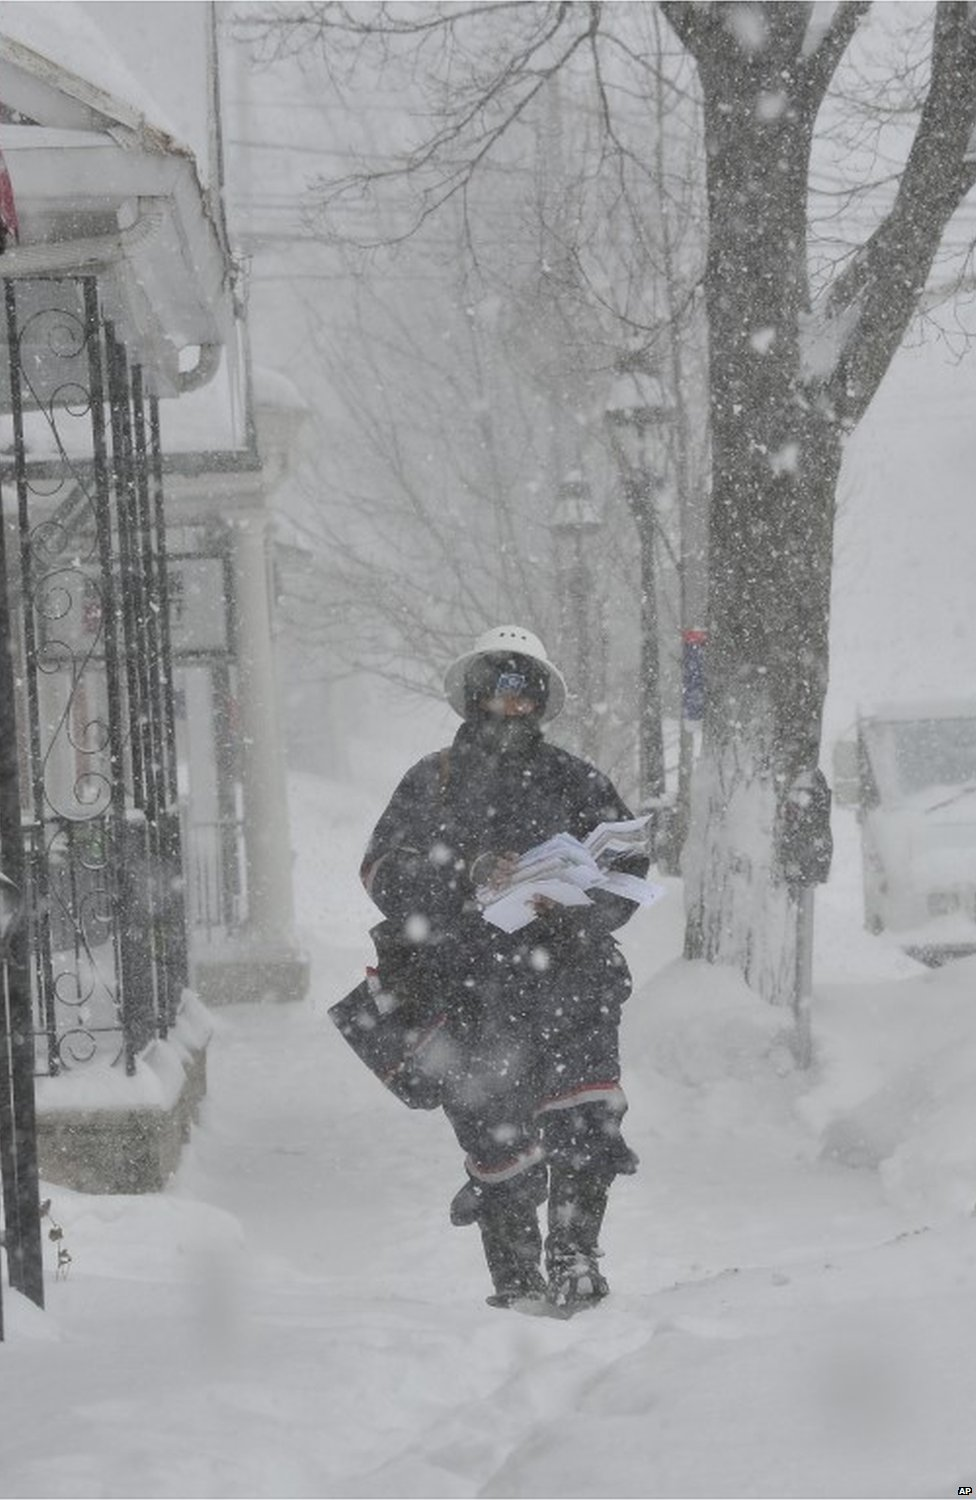 Postman in Bethlehem, Pennsylvania, on 13 February 2014